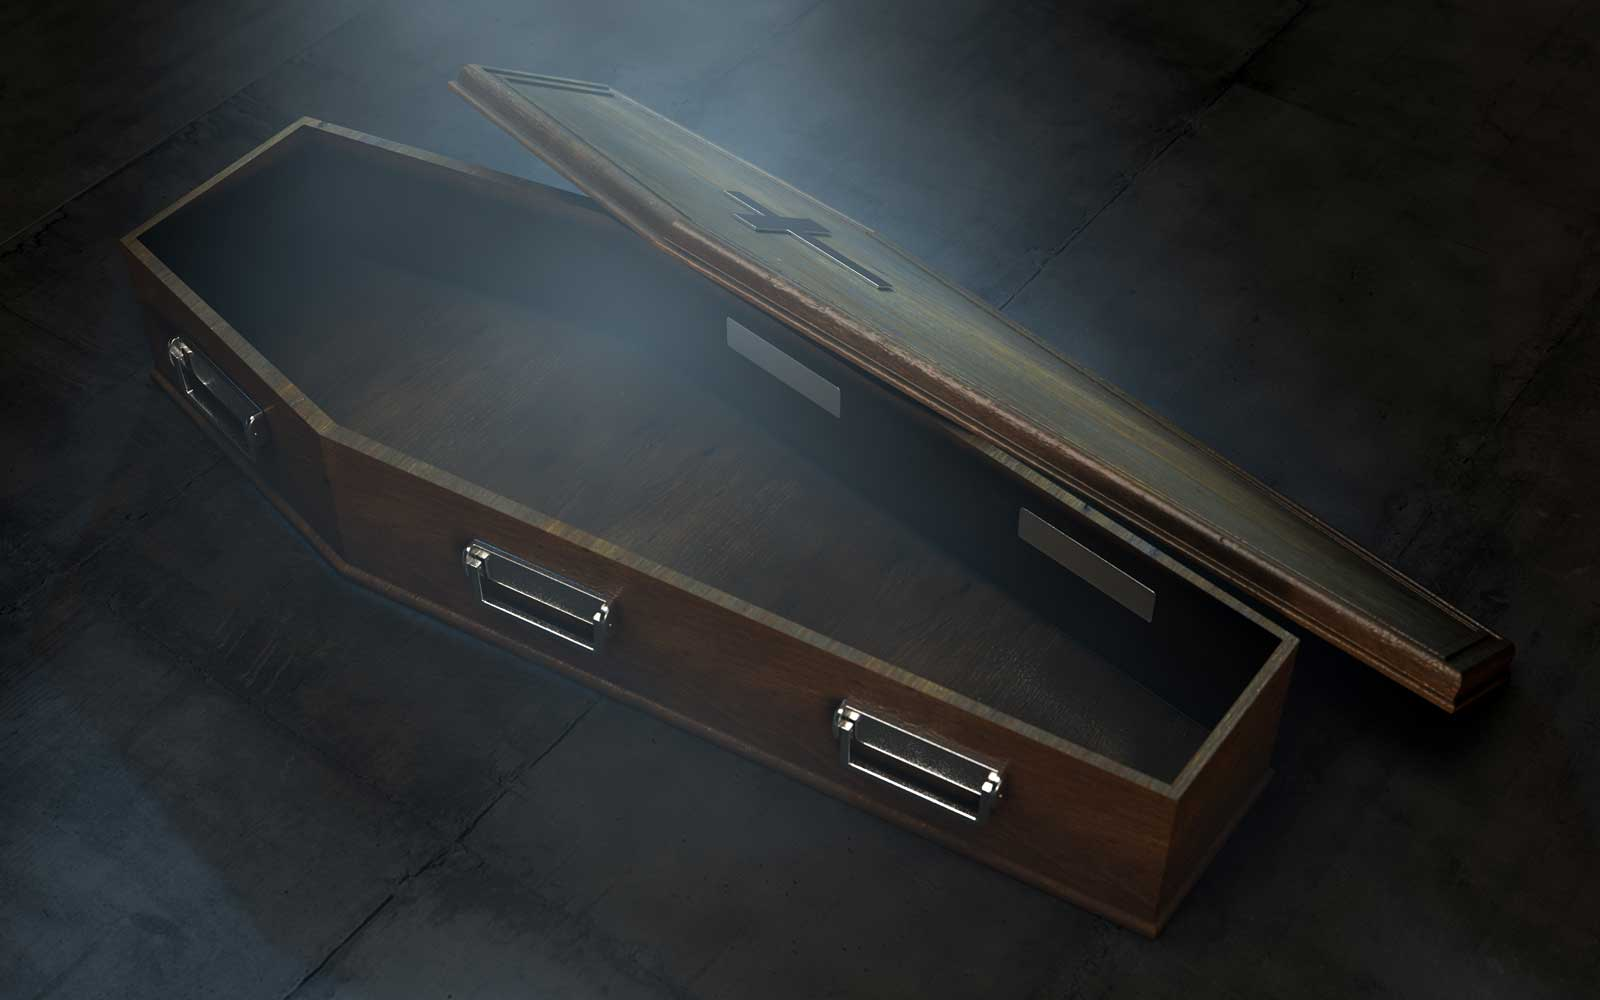 A slightly open empty wooden coffin with a metal crucifix and handles on a dark ominous background